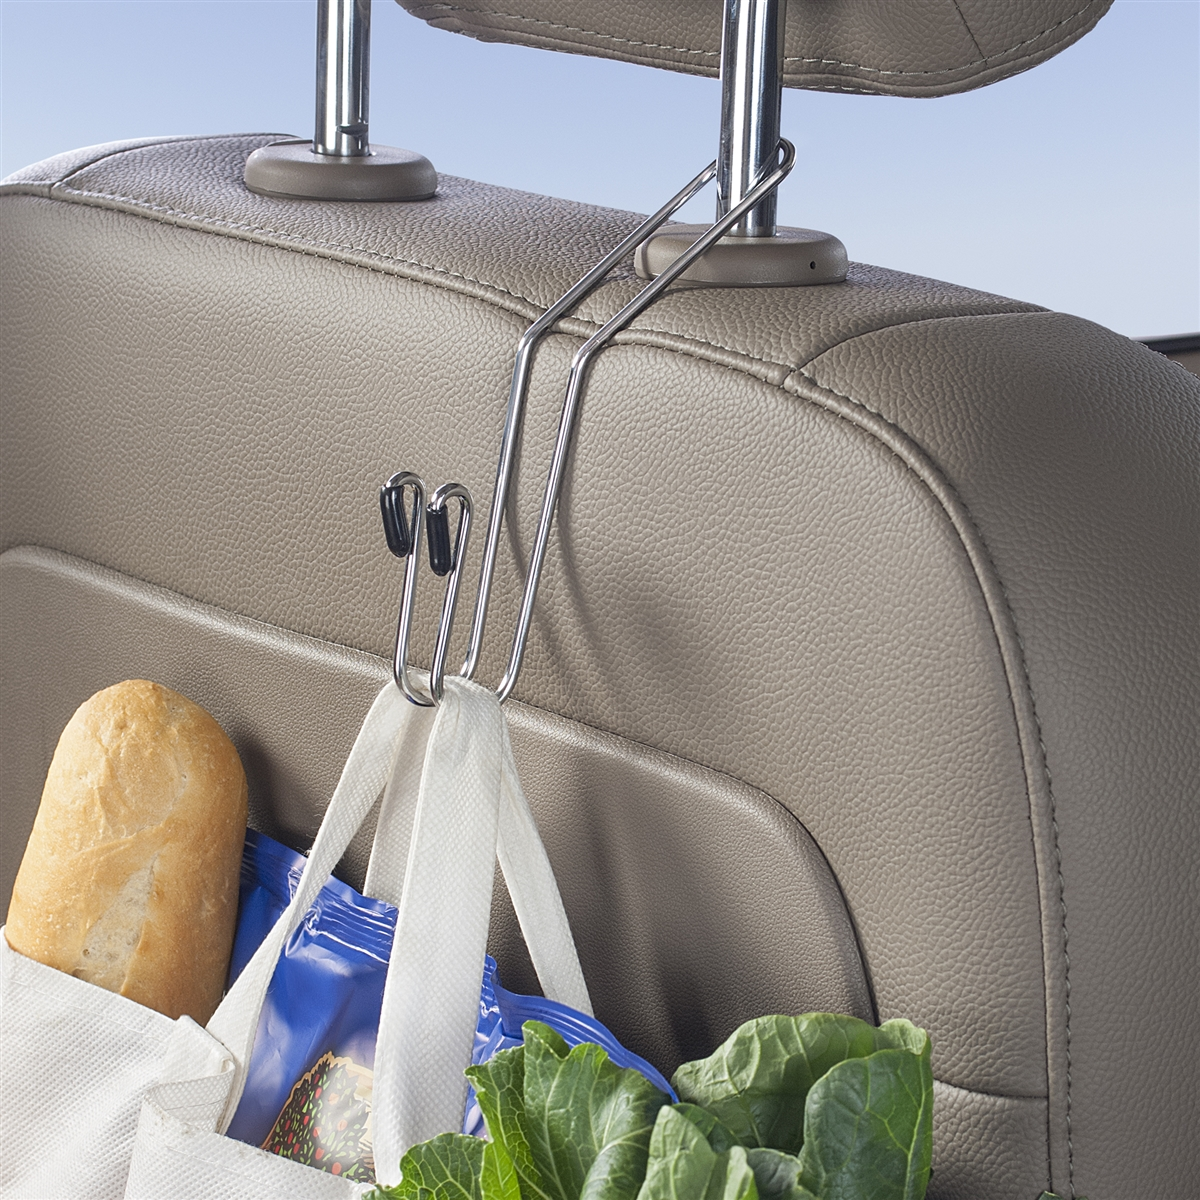 Add Seat Back Storage To The Car Interior